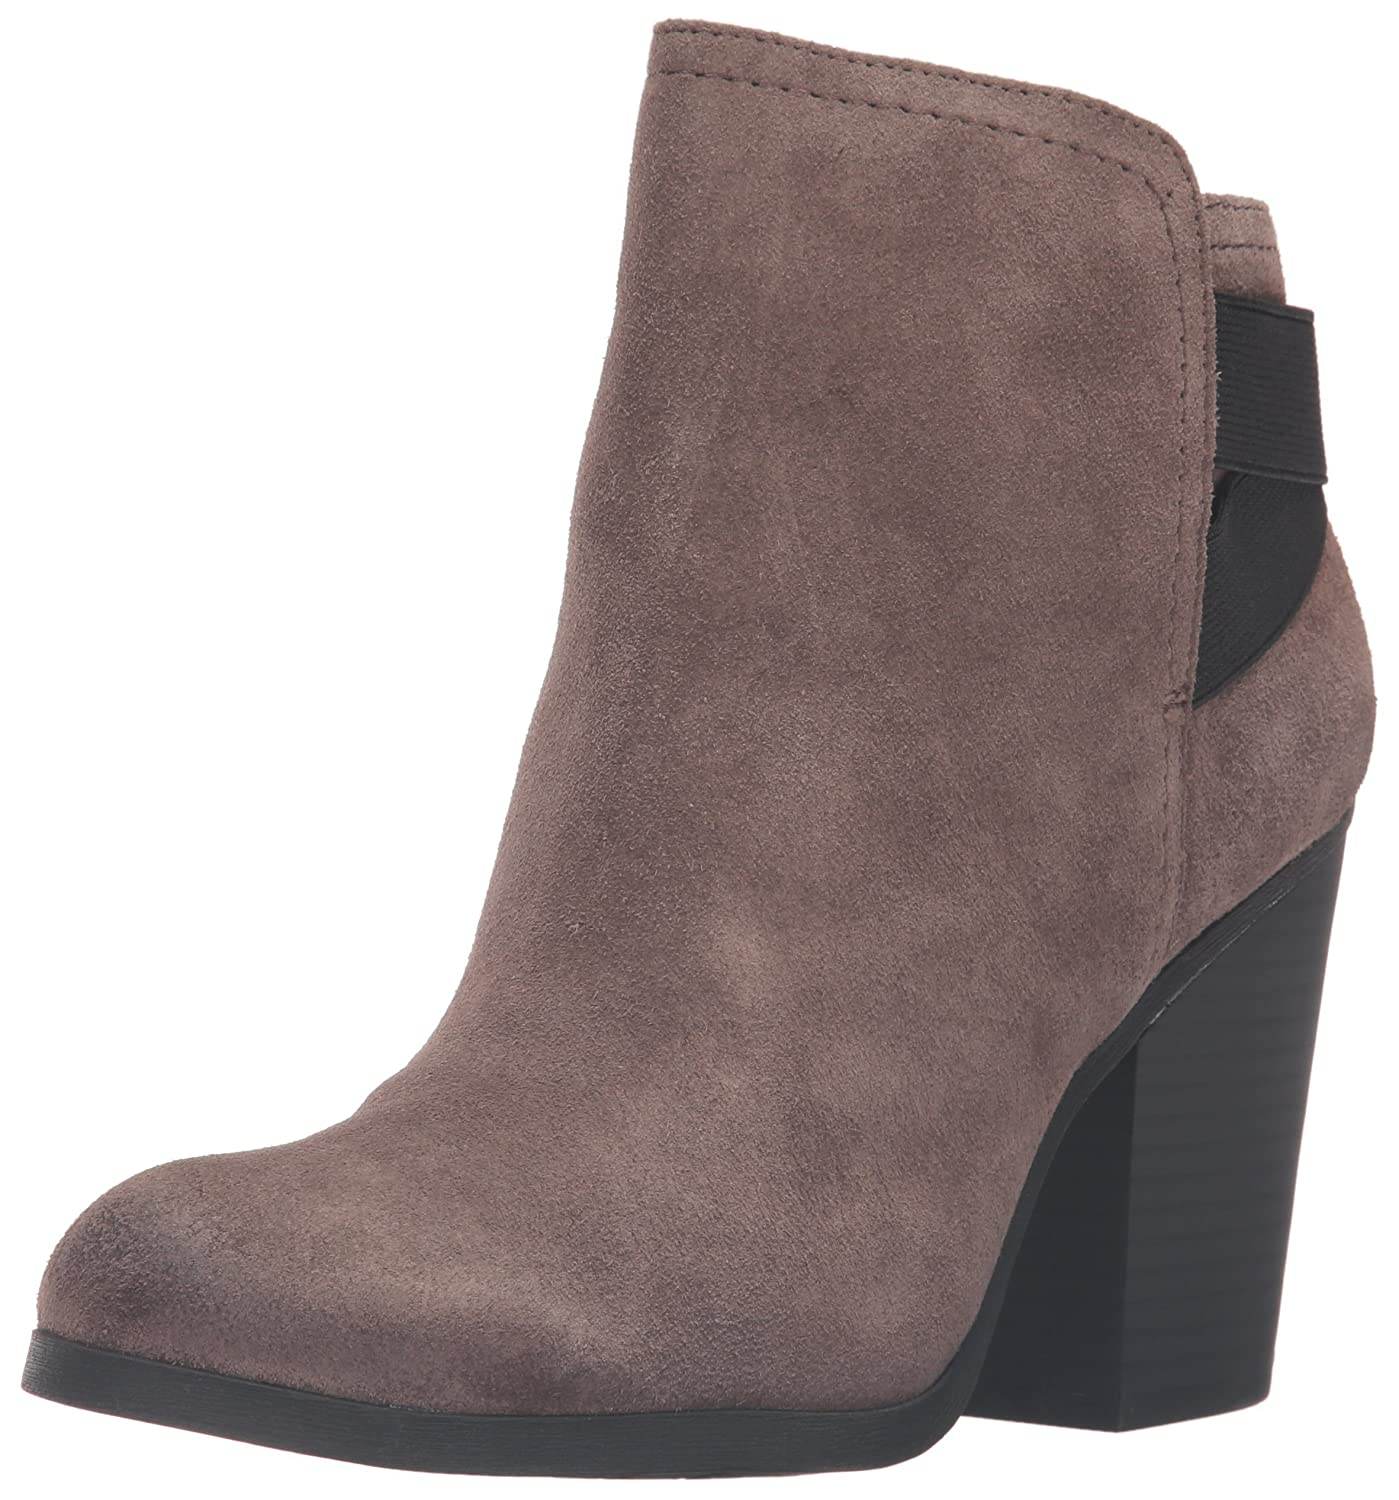 Kenneth Cole REACTION Women's Might Make It Ankle Bootie B01CPTCSL2 6 B(M) US|Rock